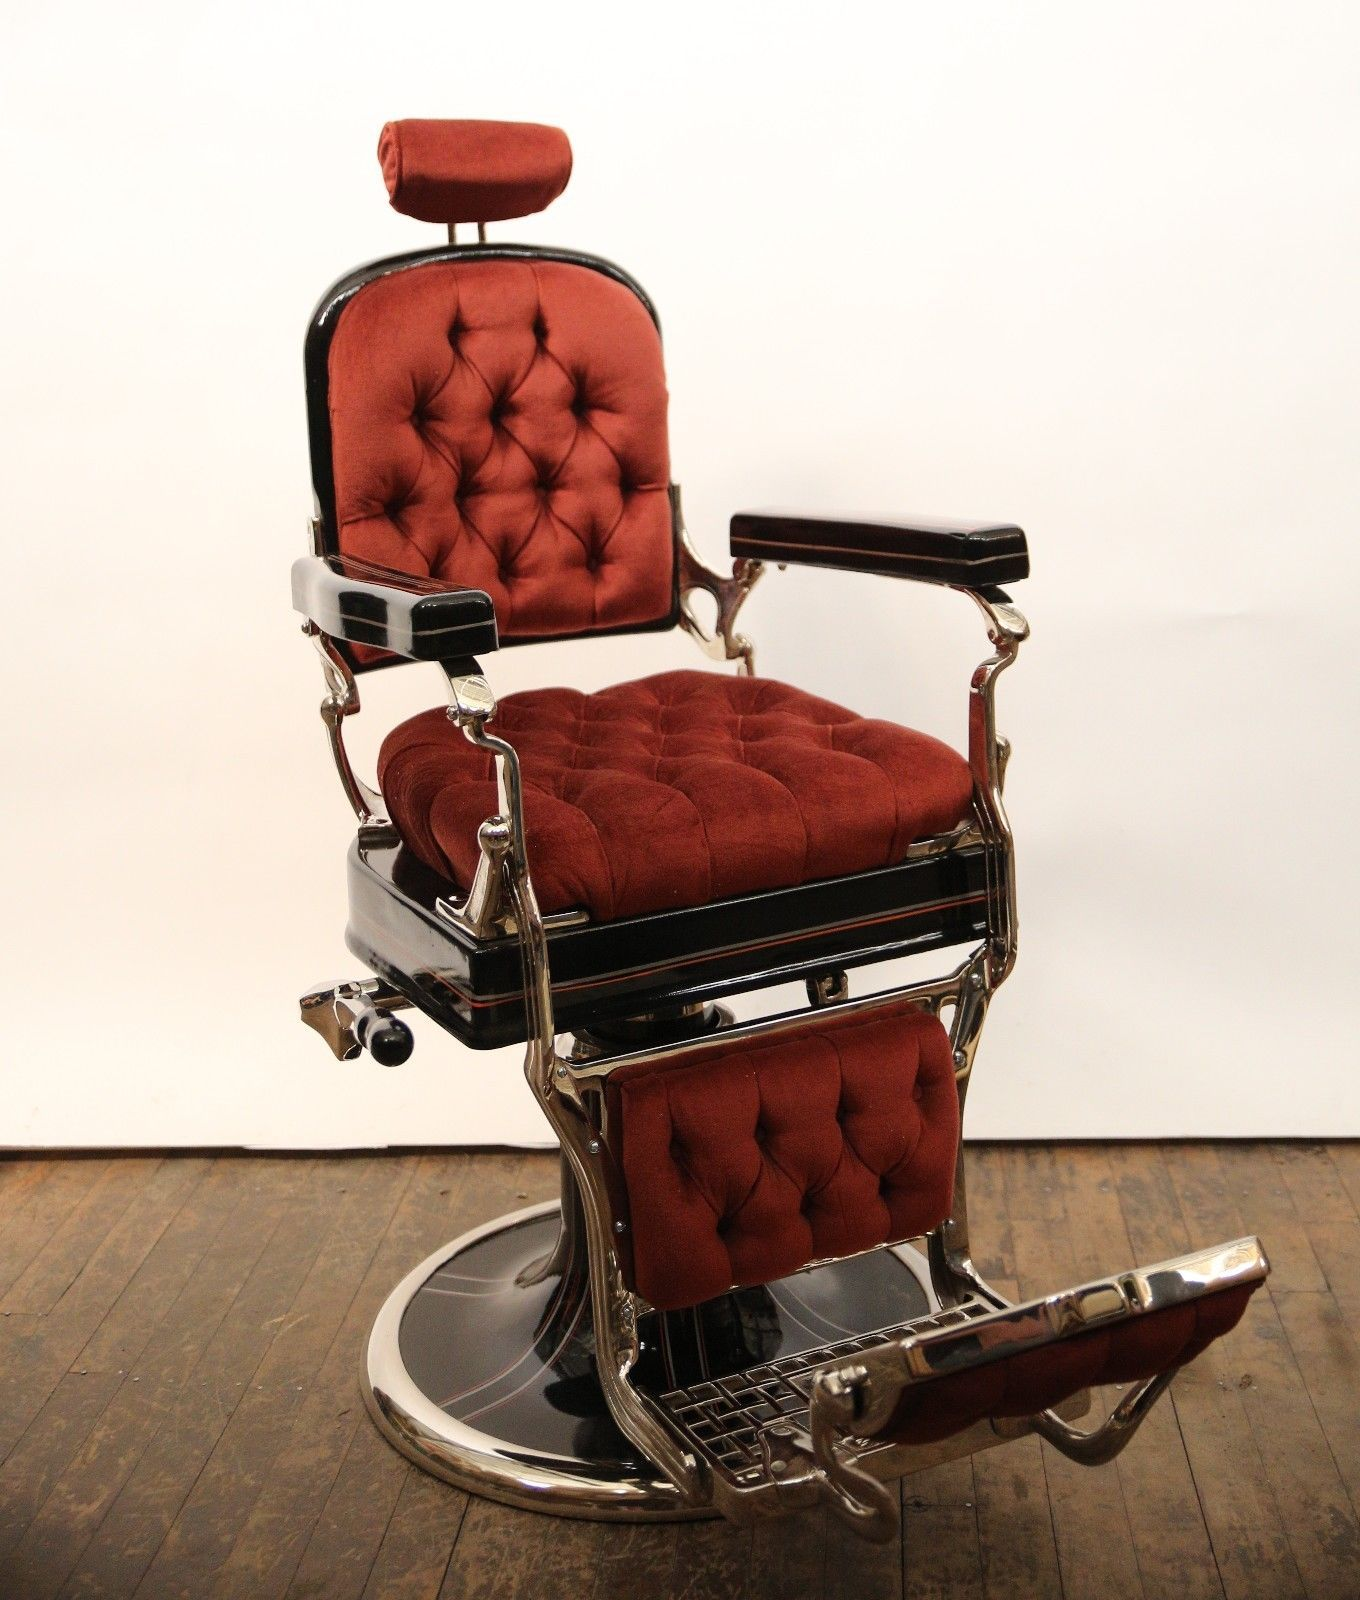 They Are Available For Local Pick Up Only We Are Conveniently Located In Carson California Right Off The 405 Freeway Barber Chair For Sale Barber Chair Chair